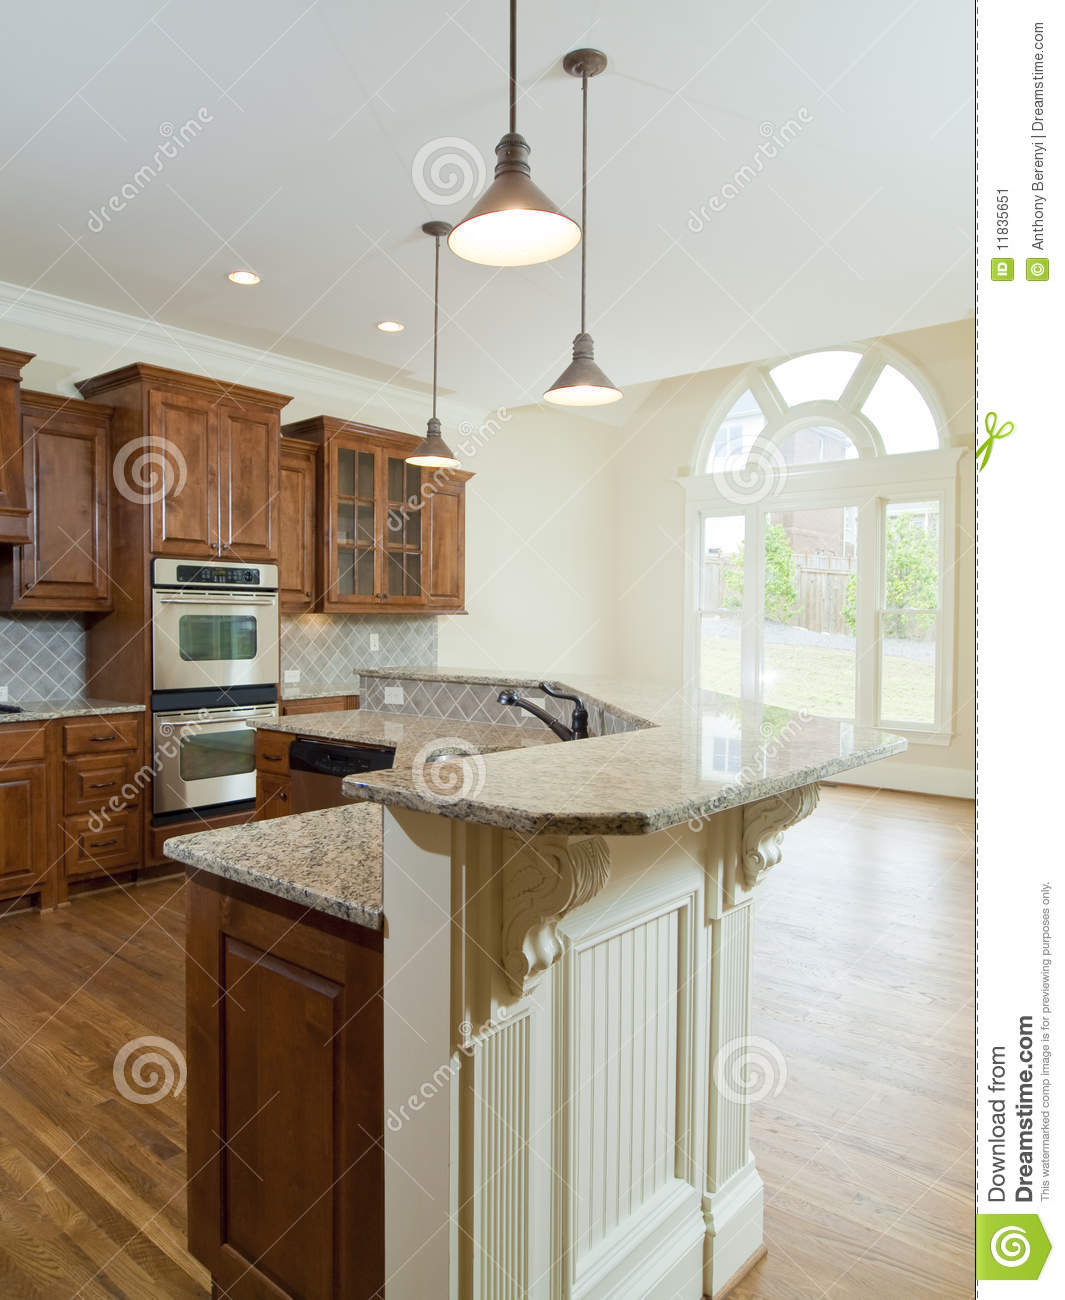 Model luxury home interior kitchen counter stock image for Interieur maison de luxe